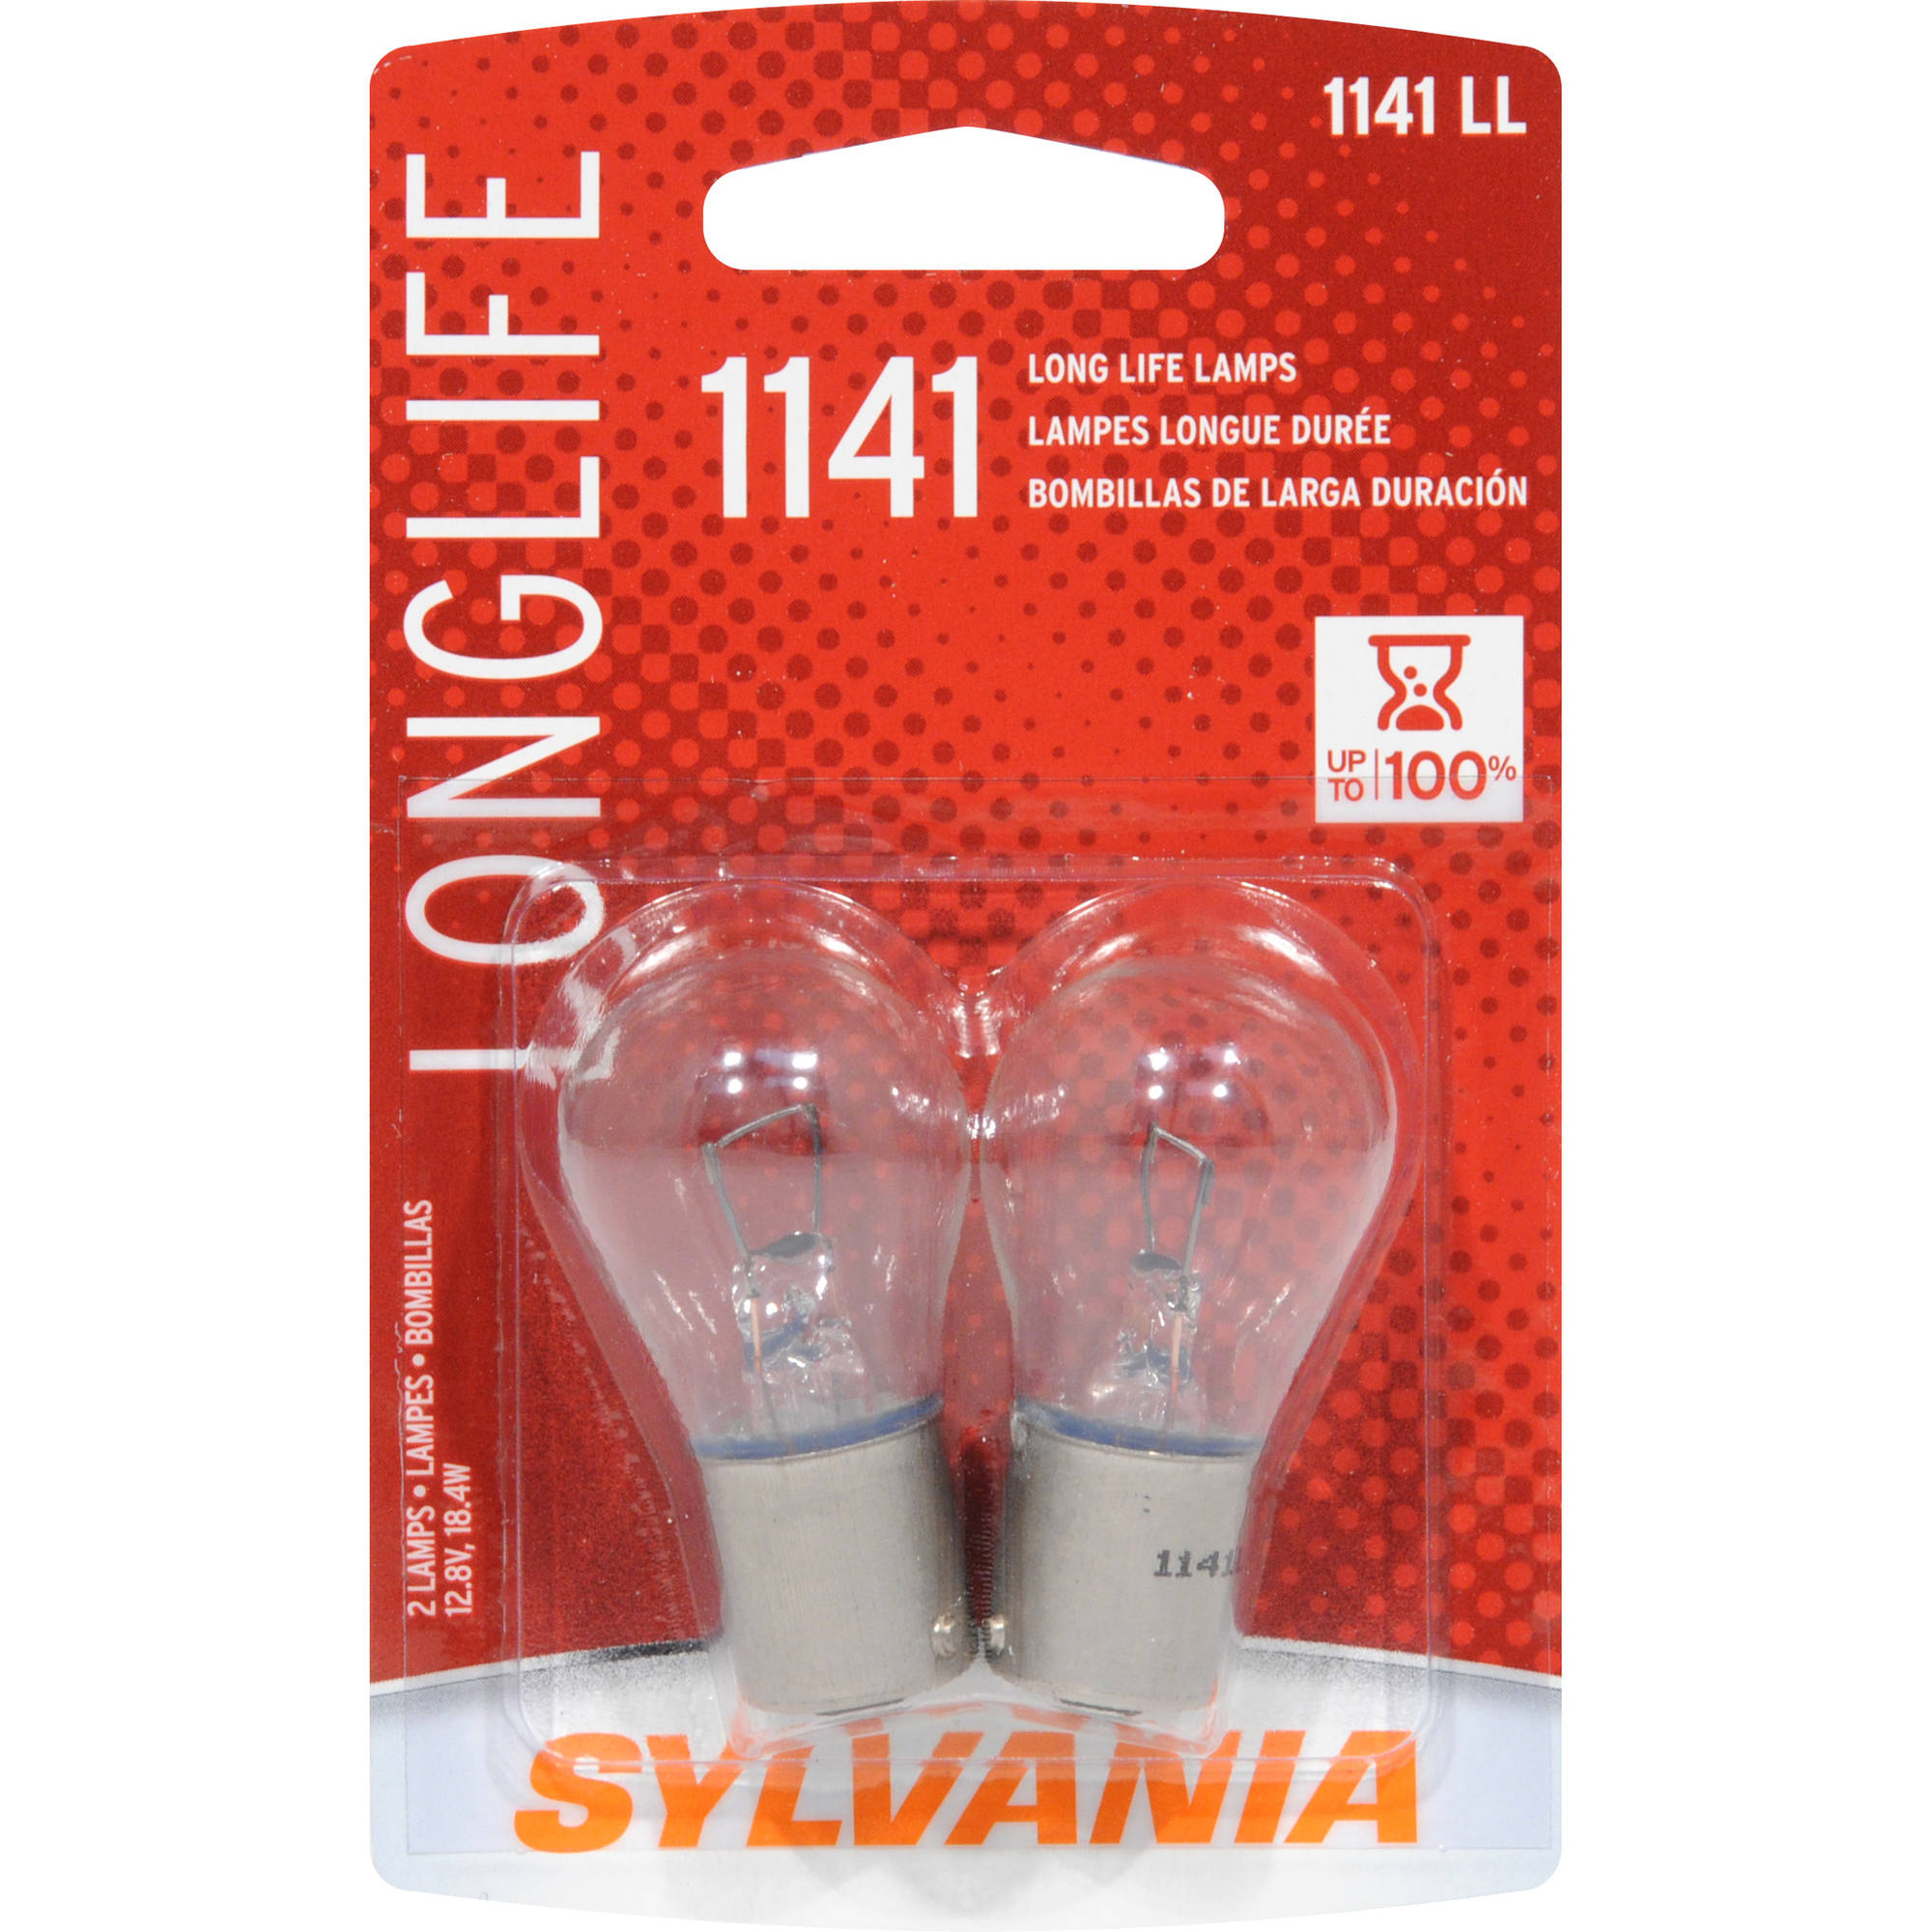 Sylvania 1141 Long-Life Miniature Bulb, Twin Pack